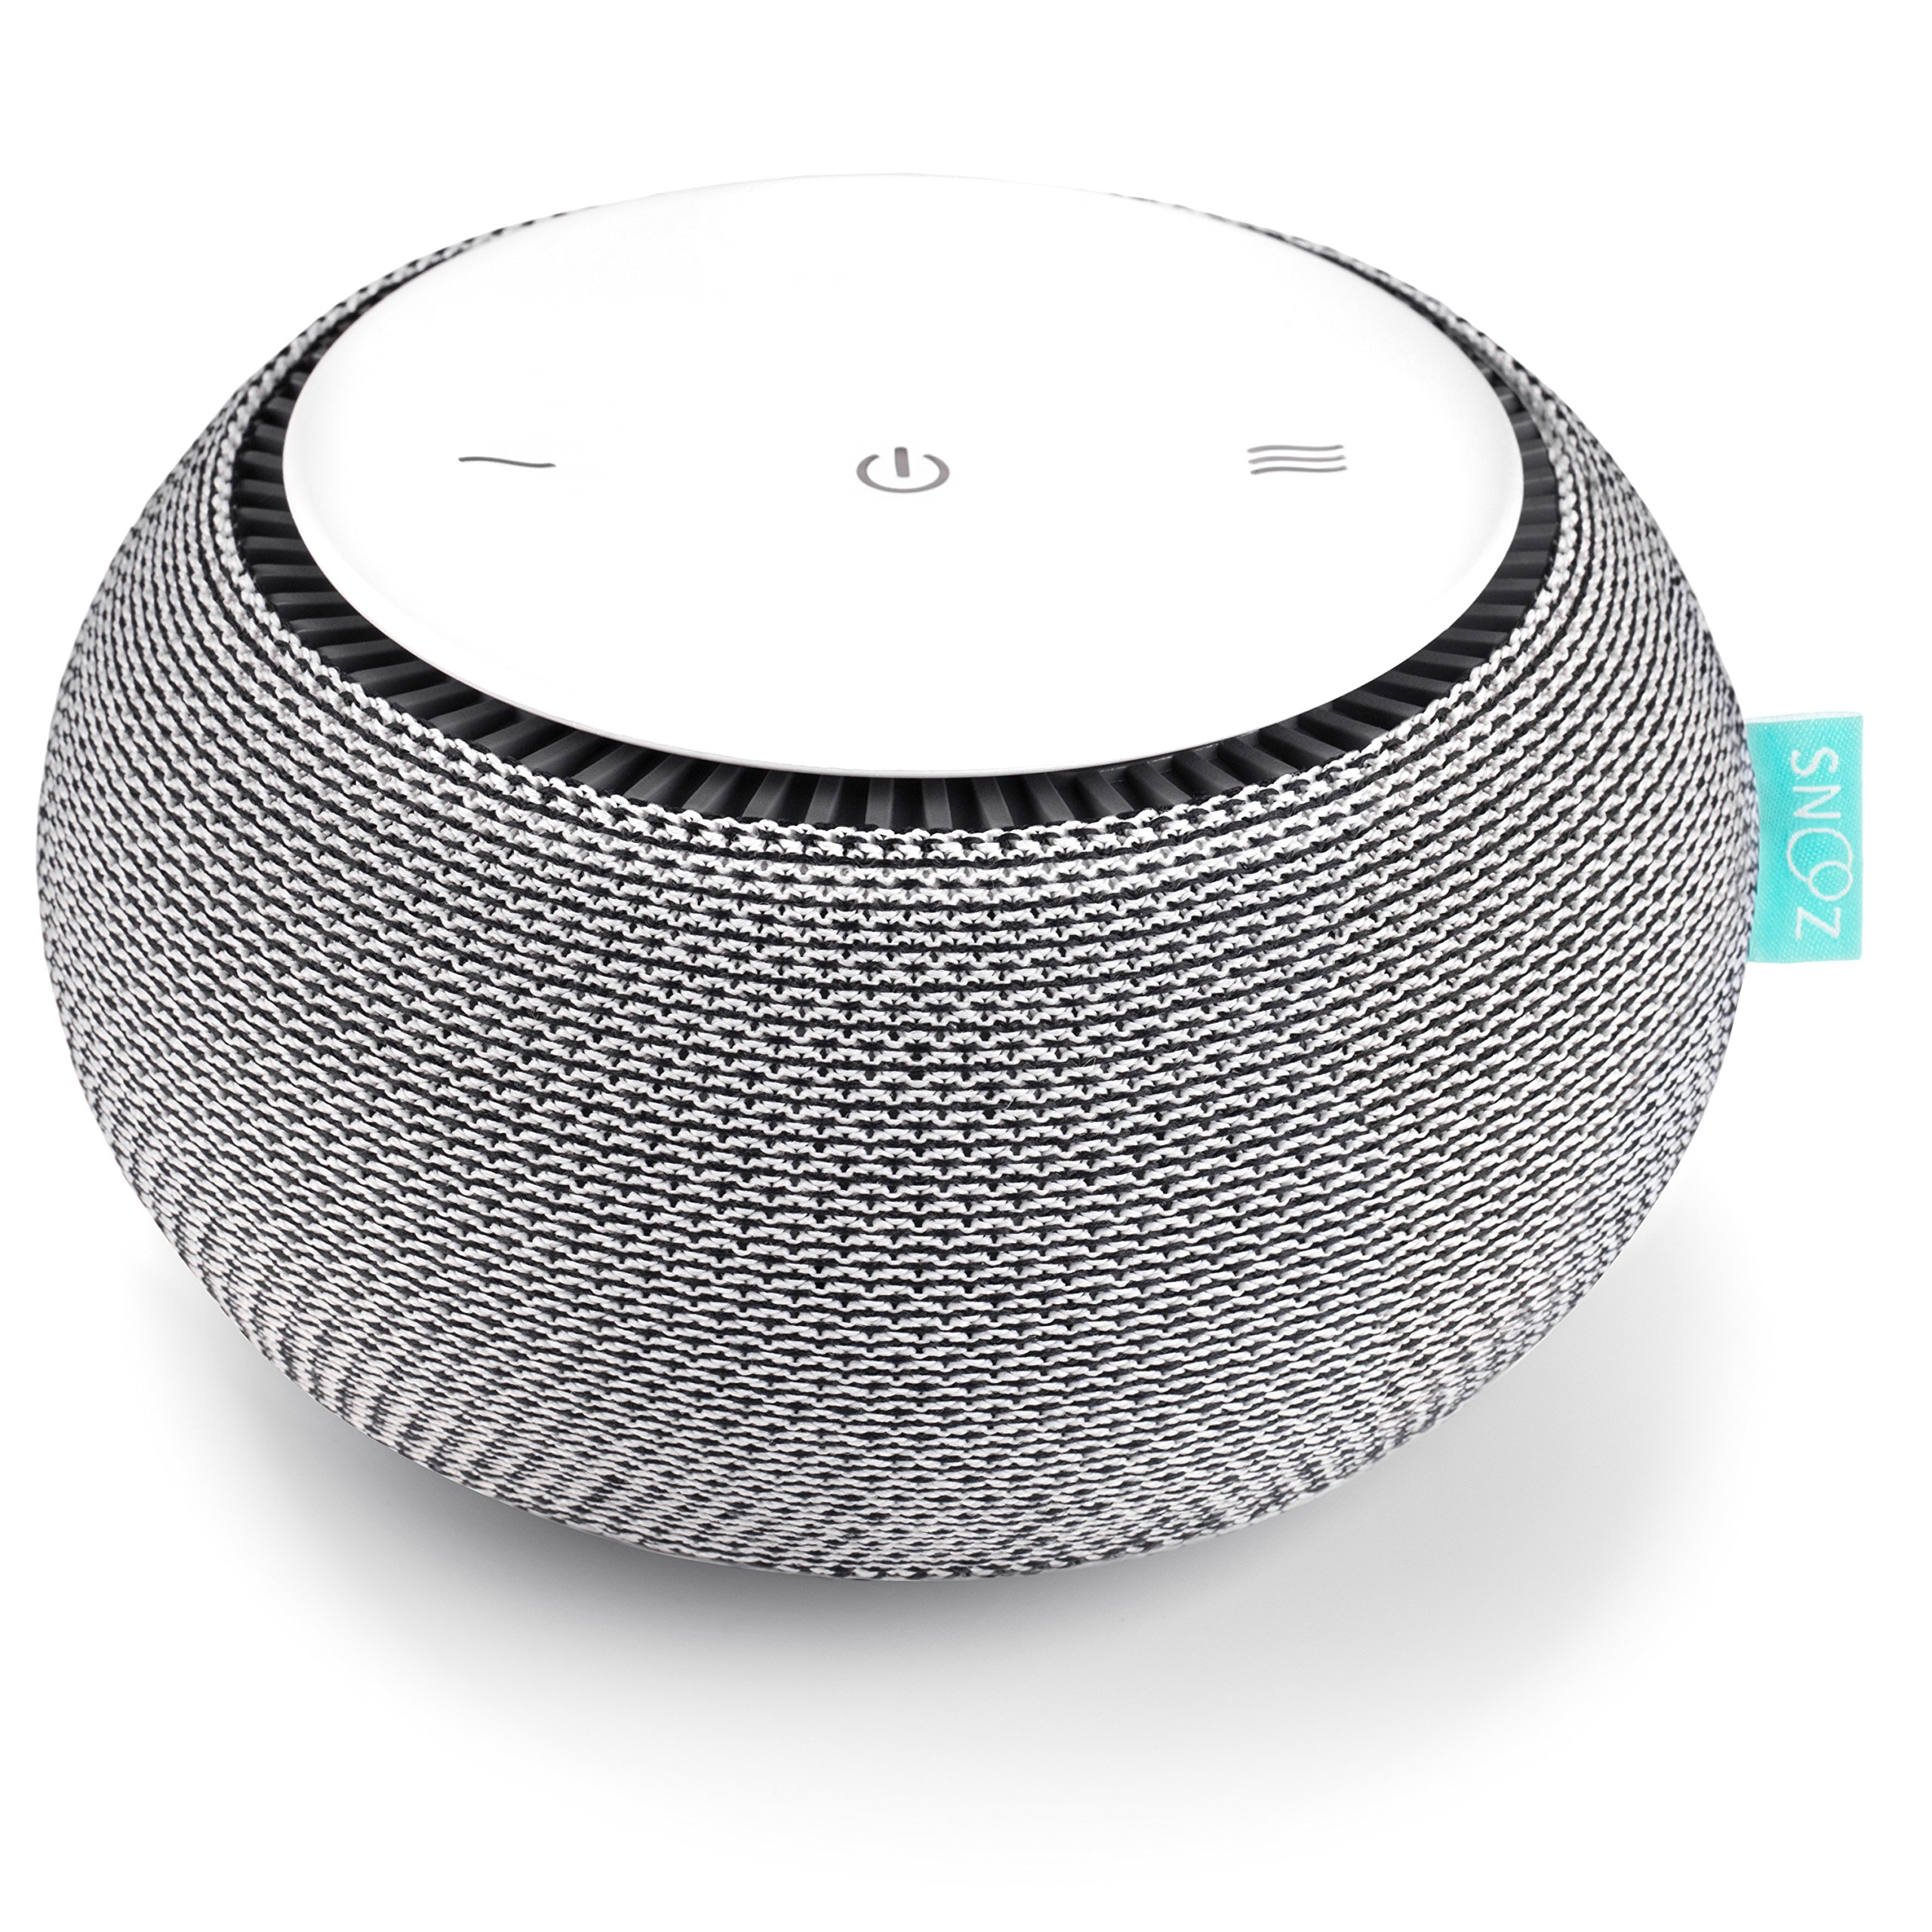 SNOOZ White Noise Sound Machine - Real Fan Inside, Control via iOS and Android App - Cloud